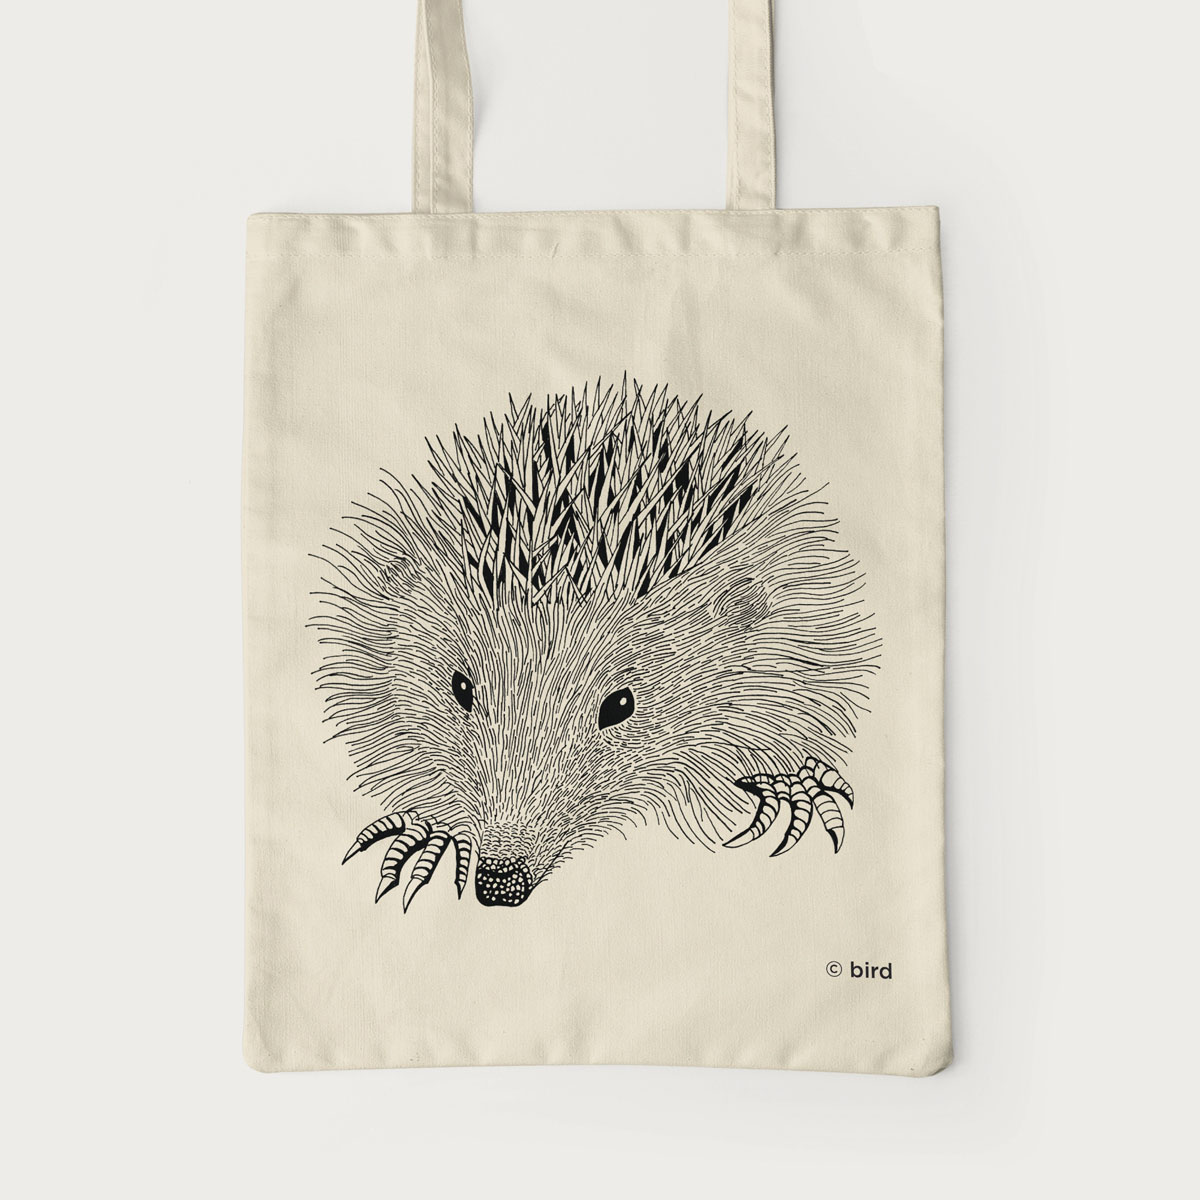 Hedgehog Screen Printed Cotton Tote Bag